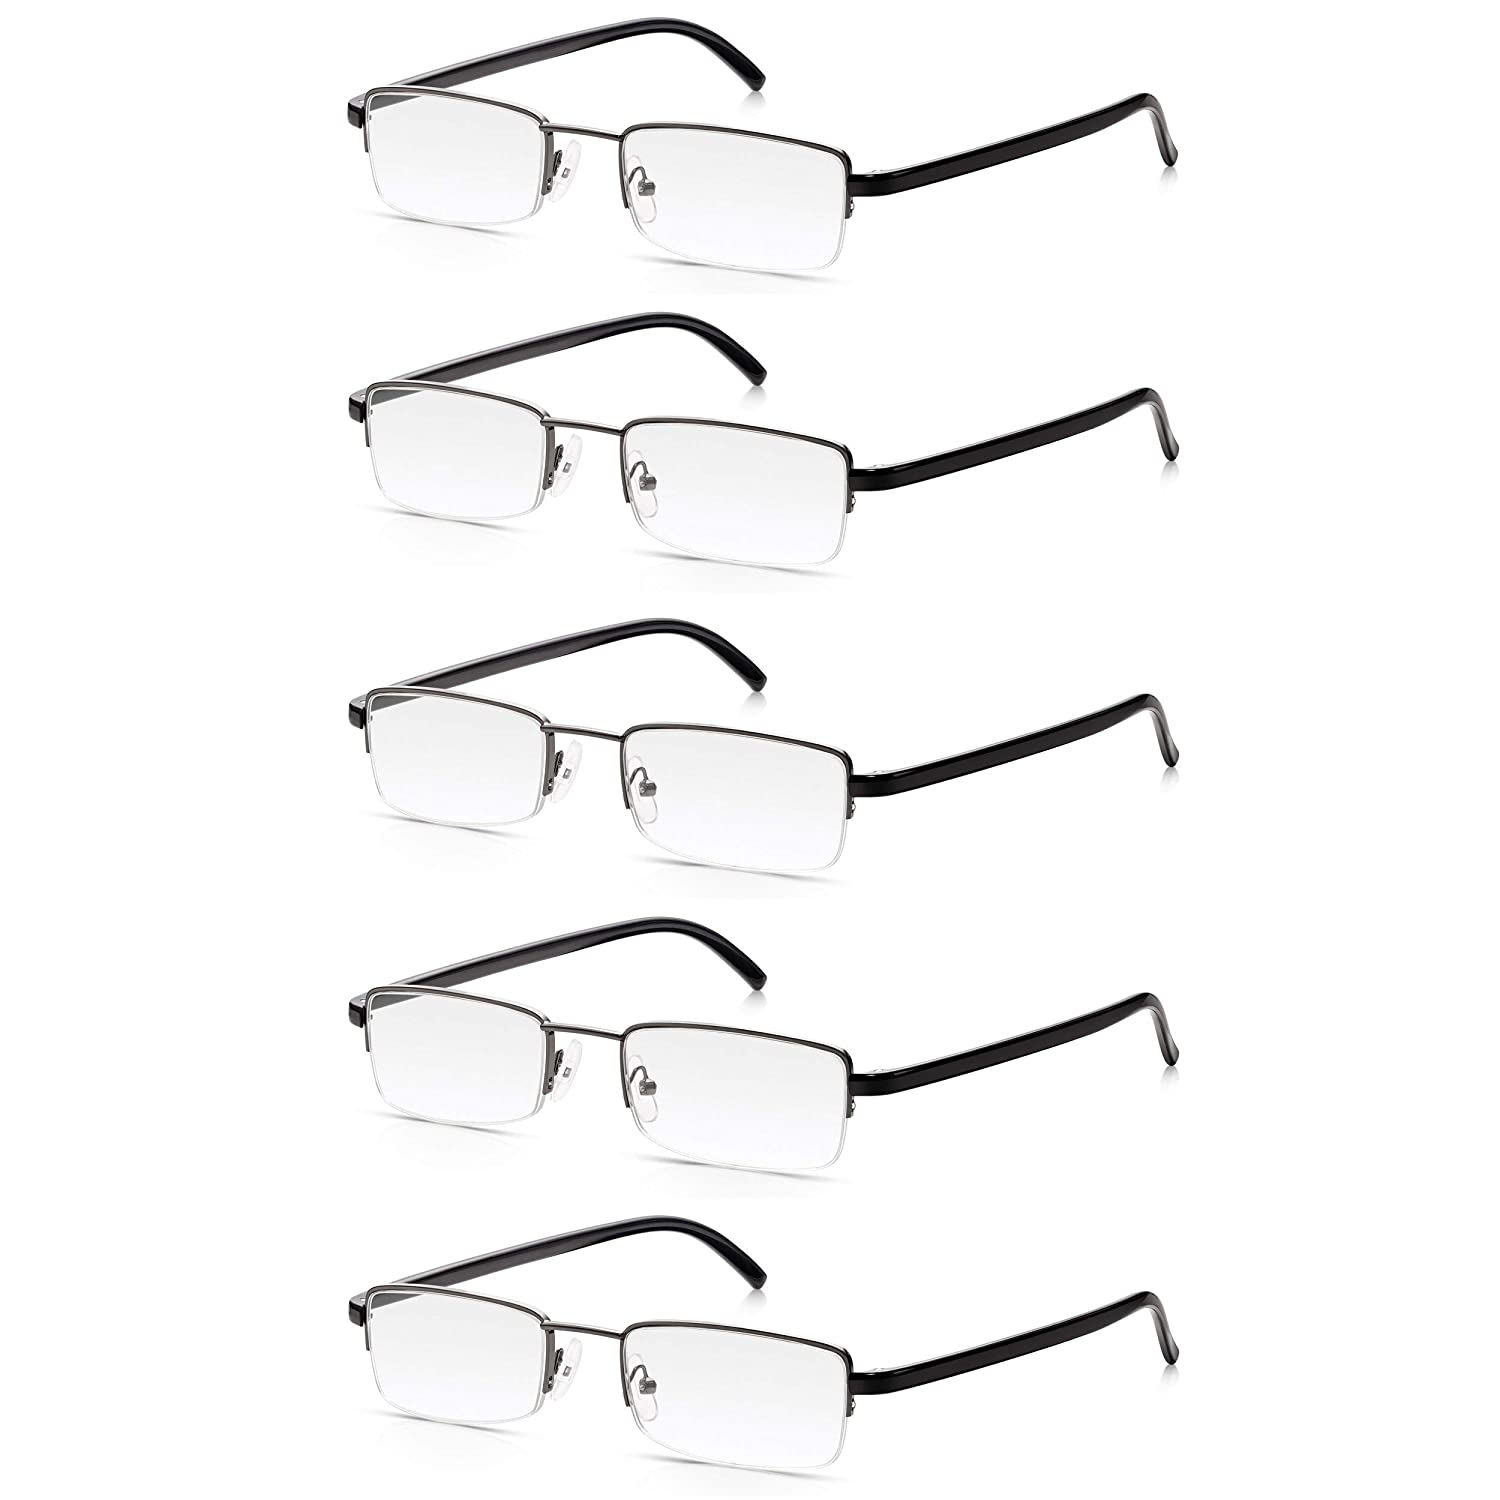 4cddae6433 5 Pack Reading Glasses 1.5  Multi-Pack of High Quality Read Optics ...